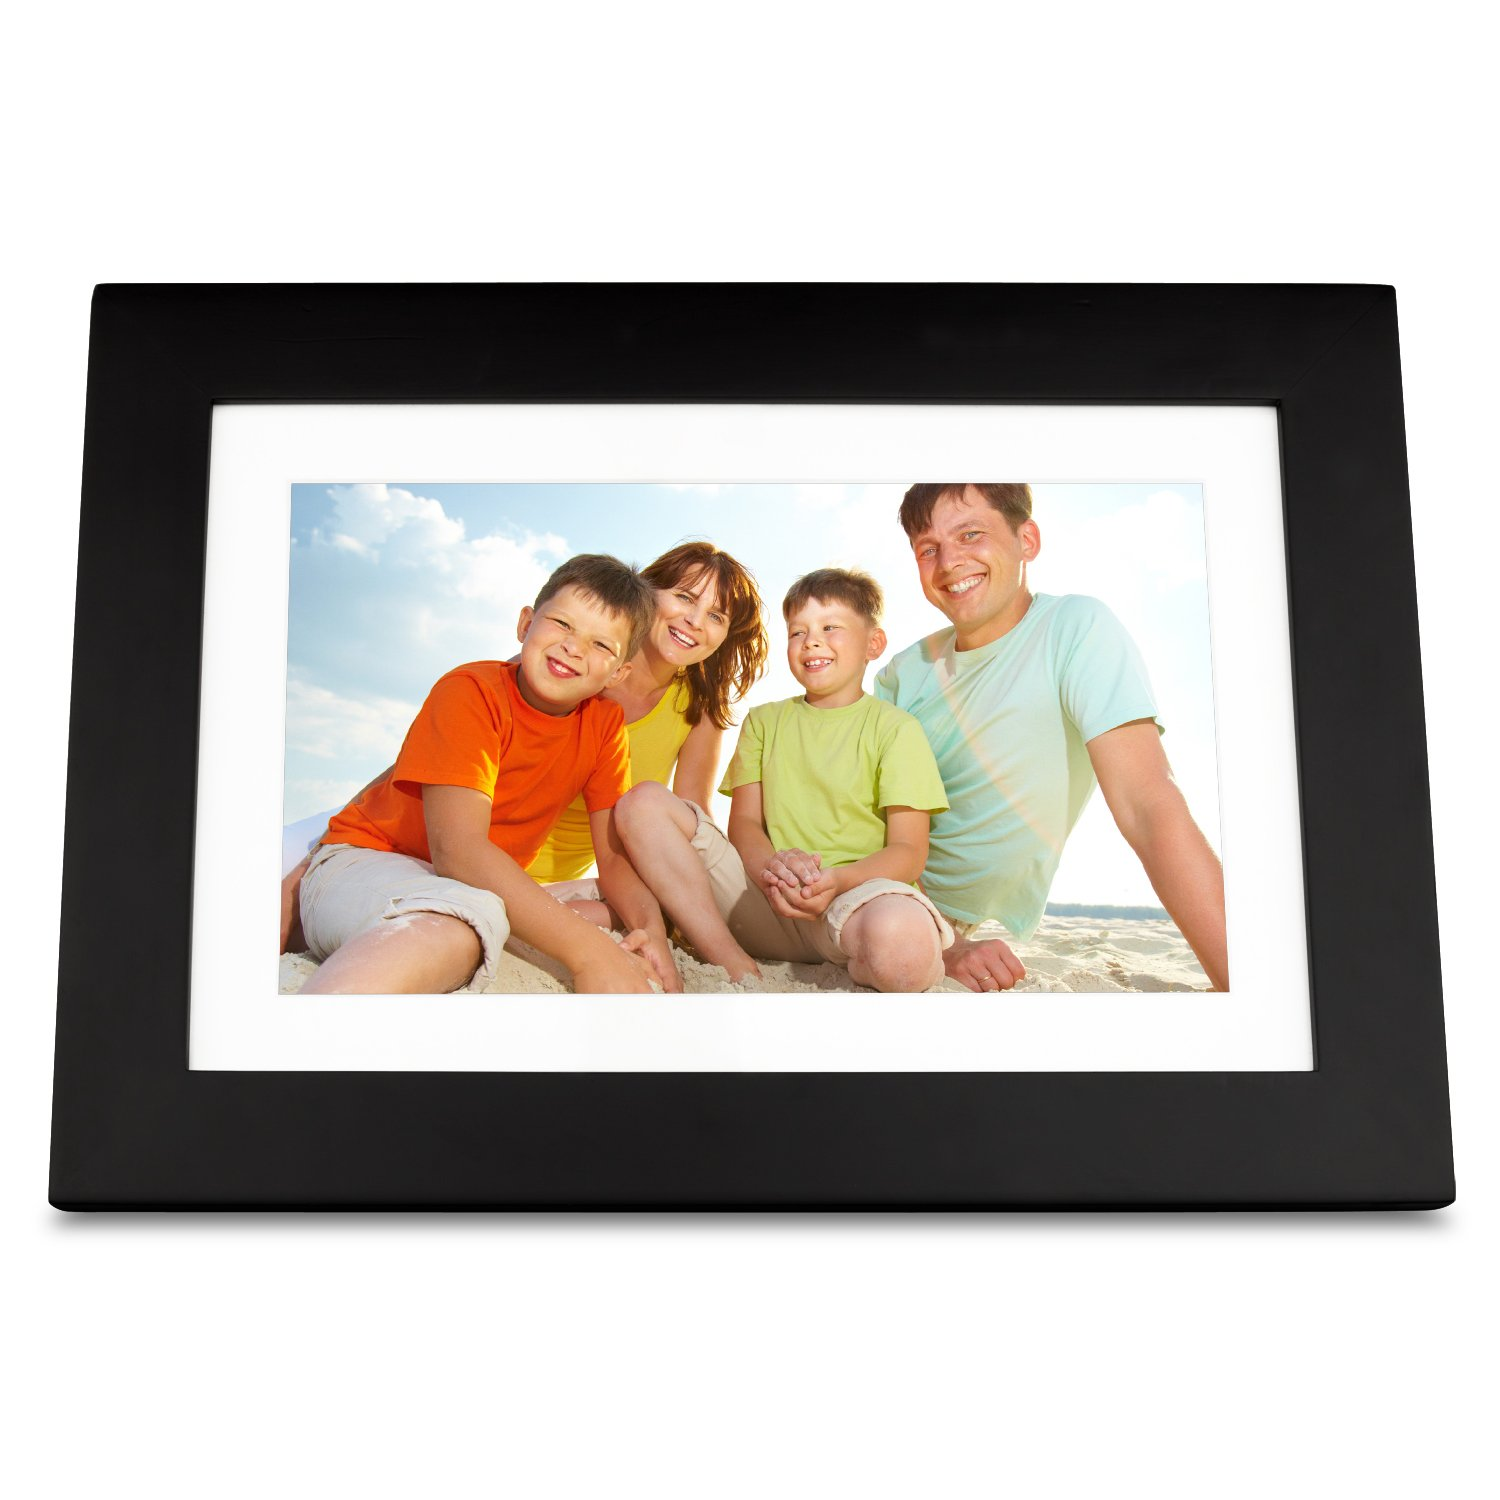 ViewSonic VFD1028W-11 10.1-Inch Digital Photo Frame Features High Resolution 1024x600 (Black) by ViewSonic